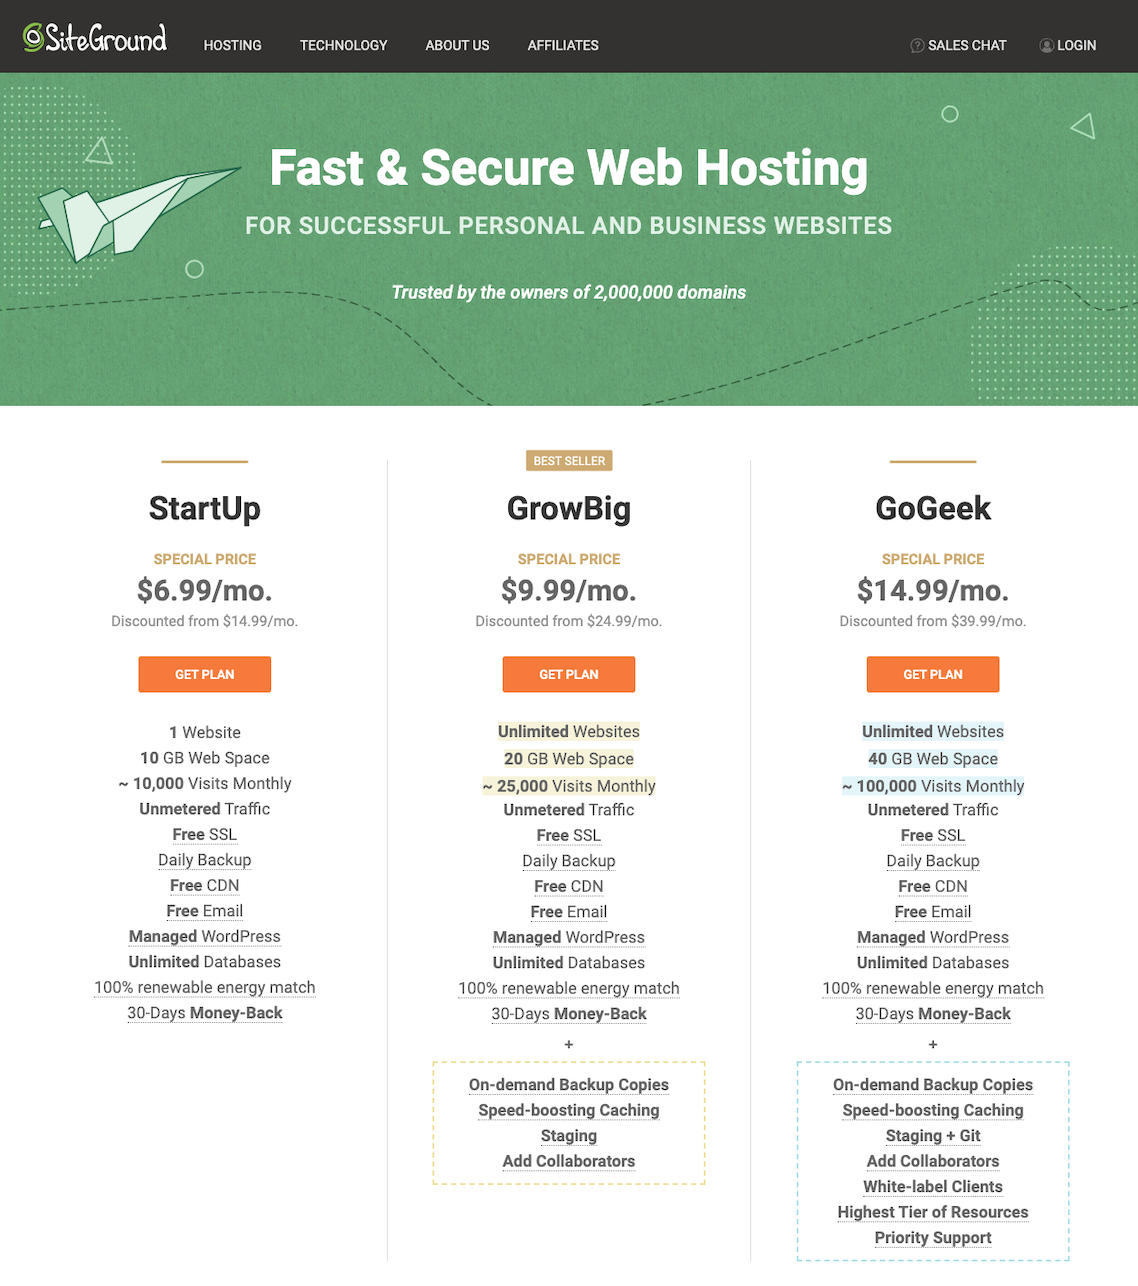 Step 1, Choose your SiteGround hosting plan